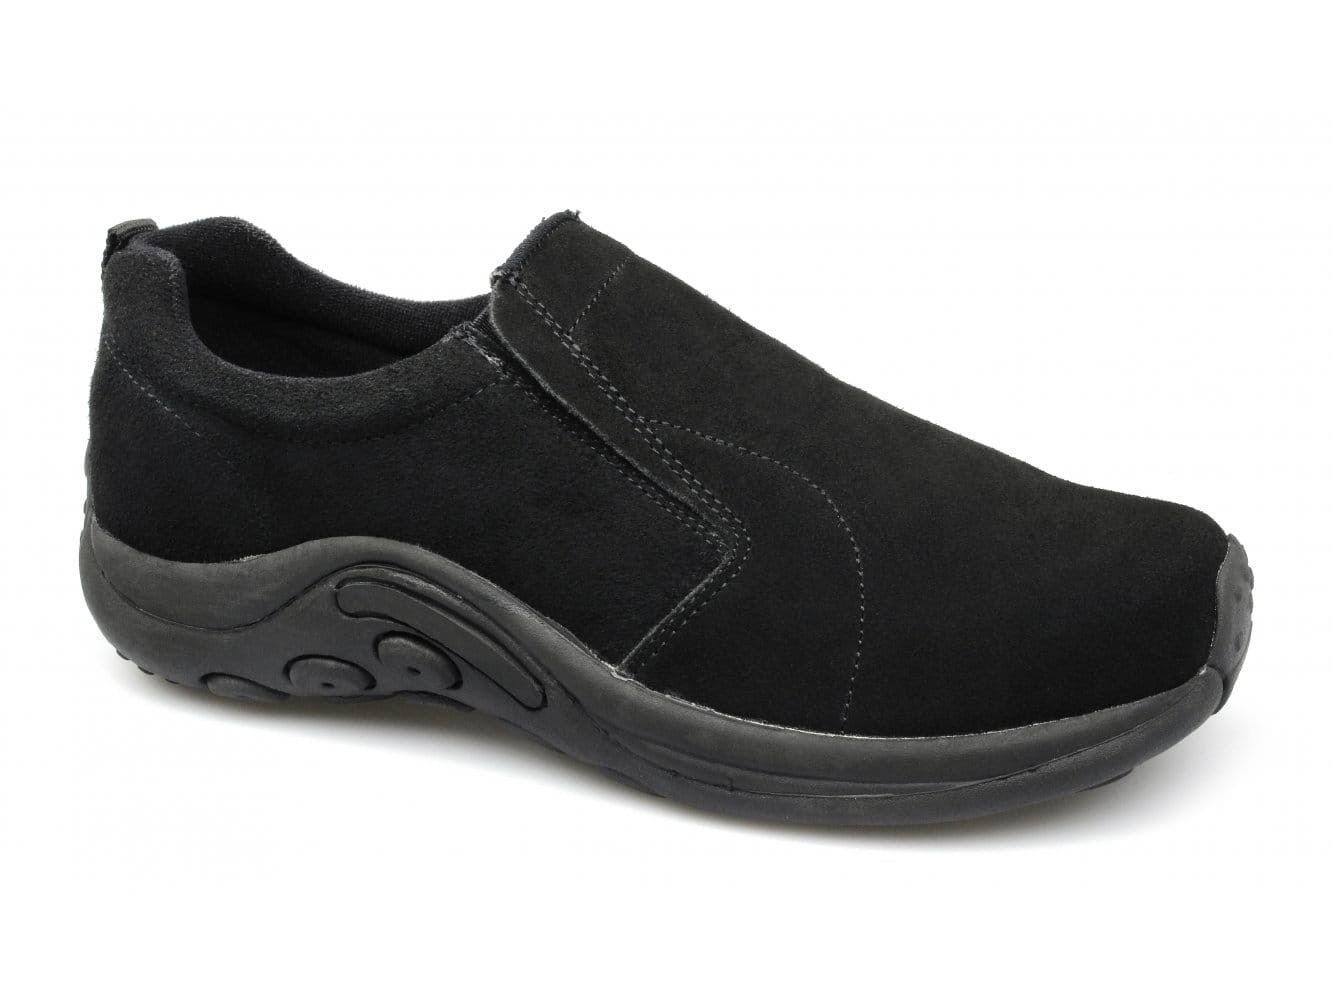 Mens Casual Slip On Suede Shoe Pdq